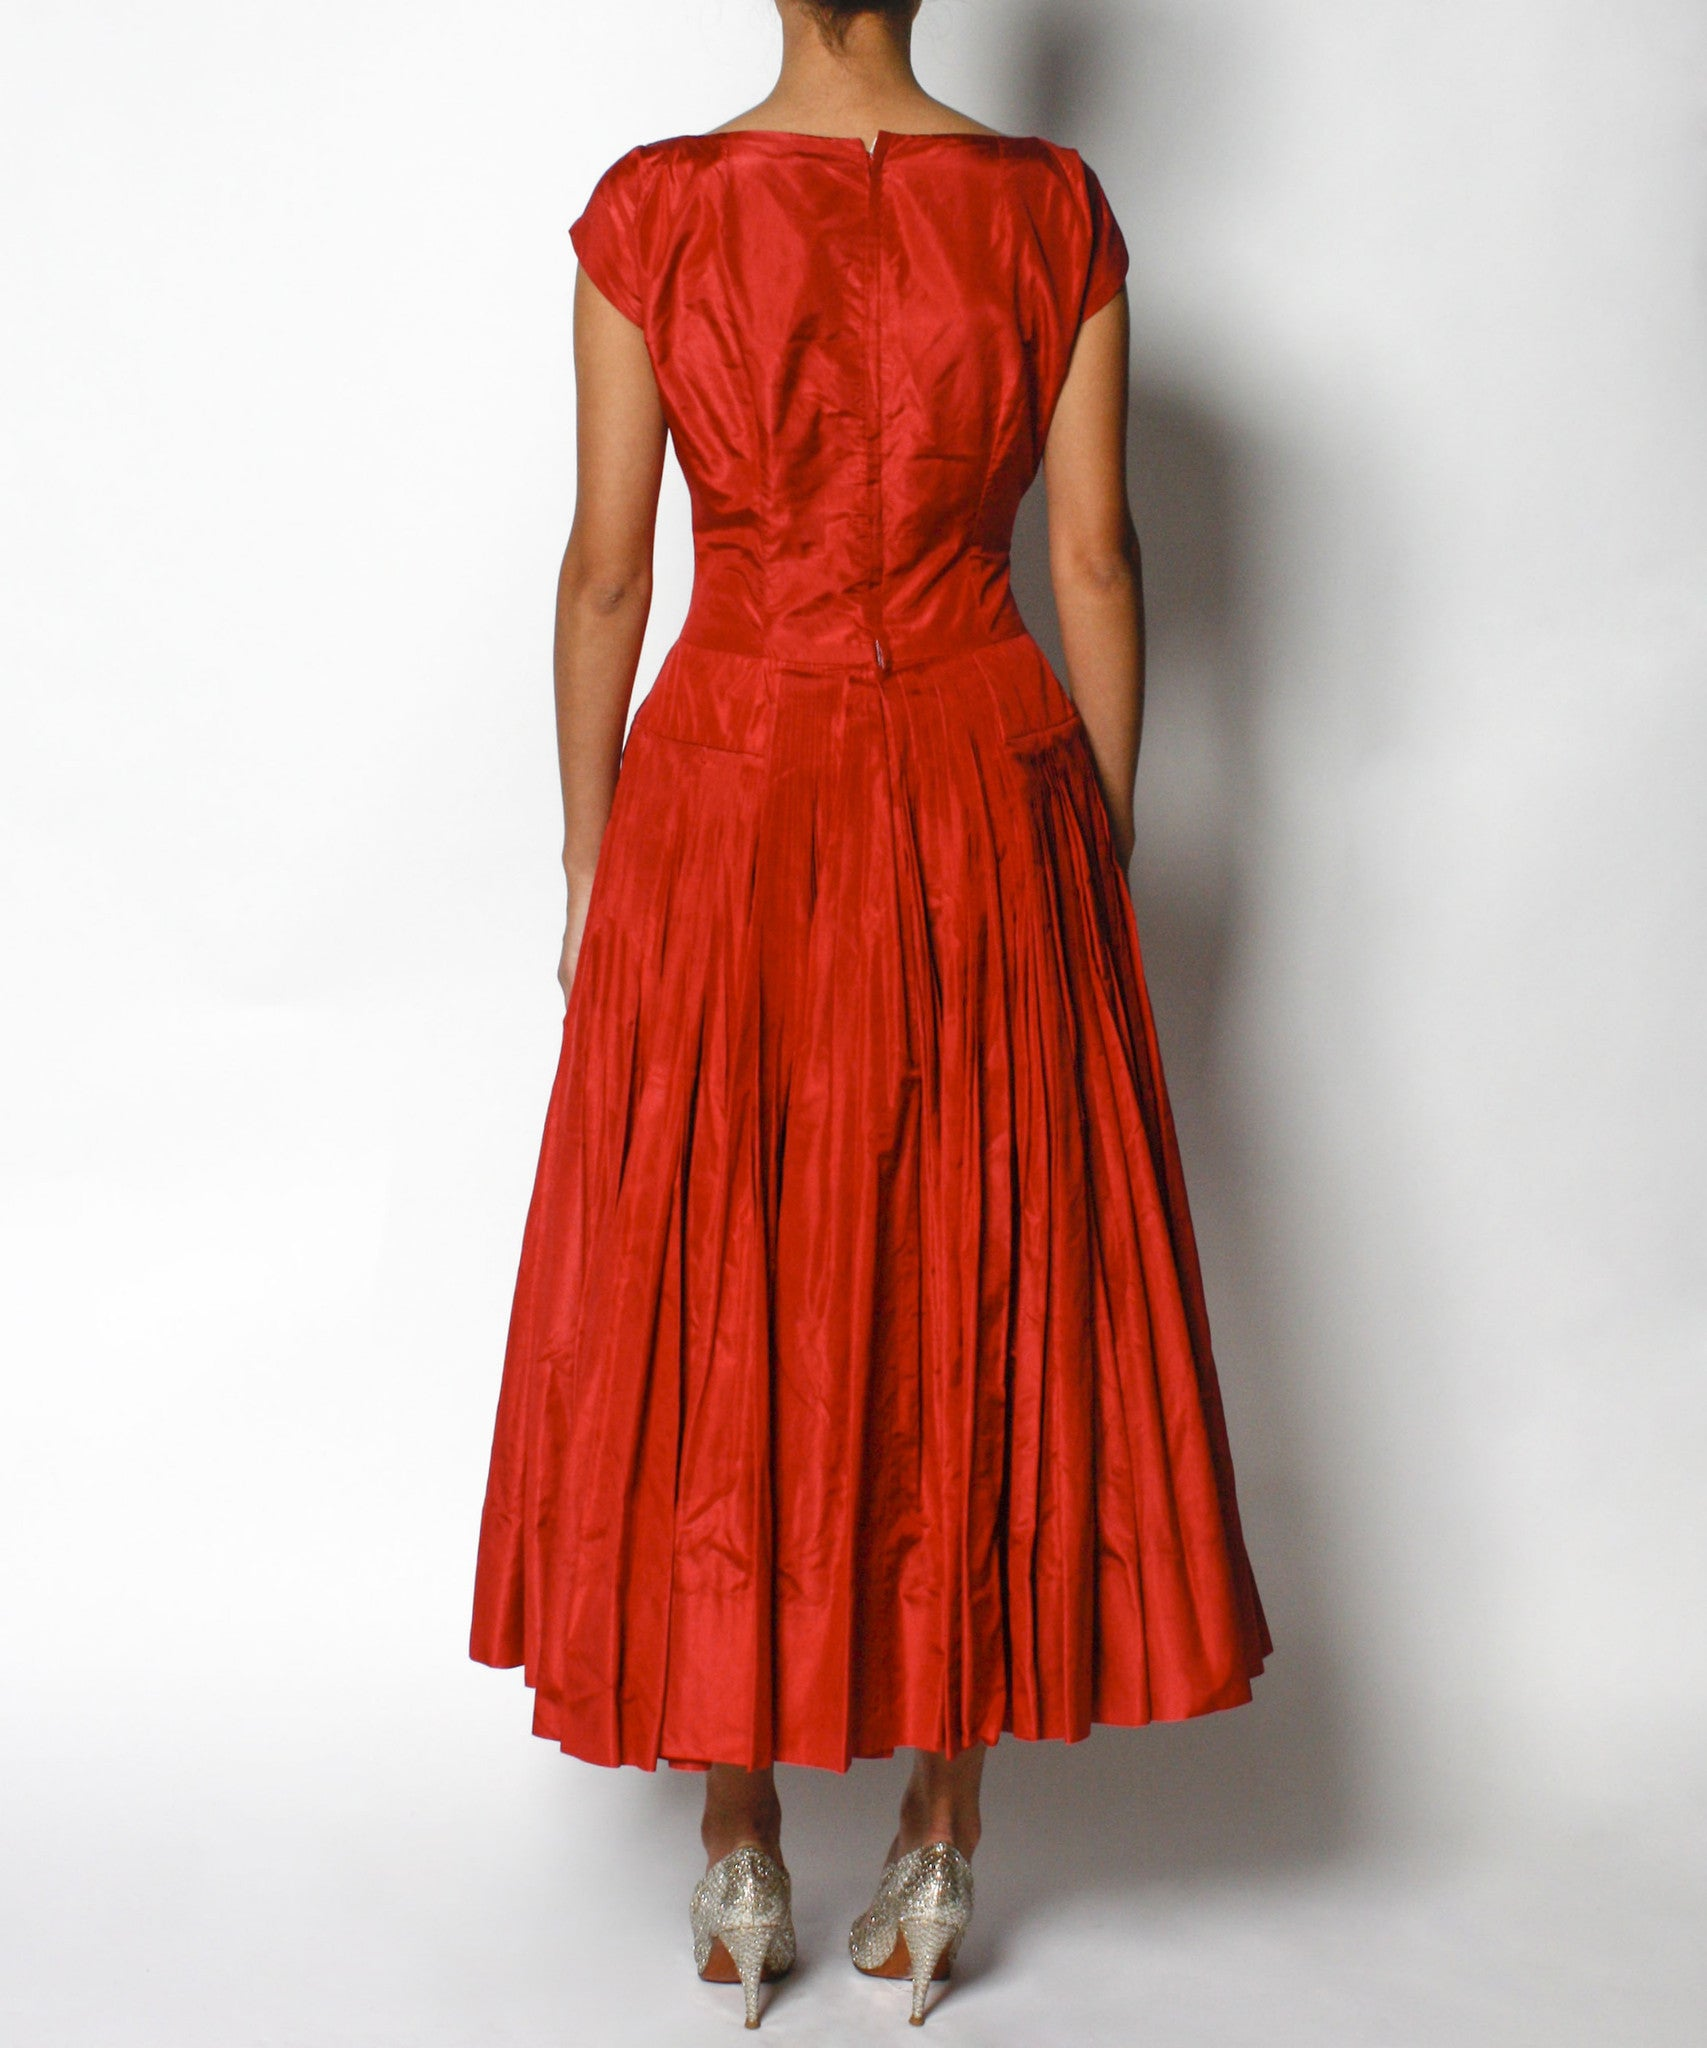 Galanos 1950s Red Silk Satin Dress - C.Madeleine's